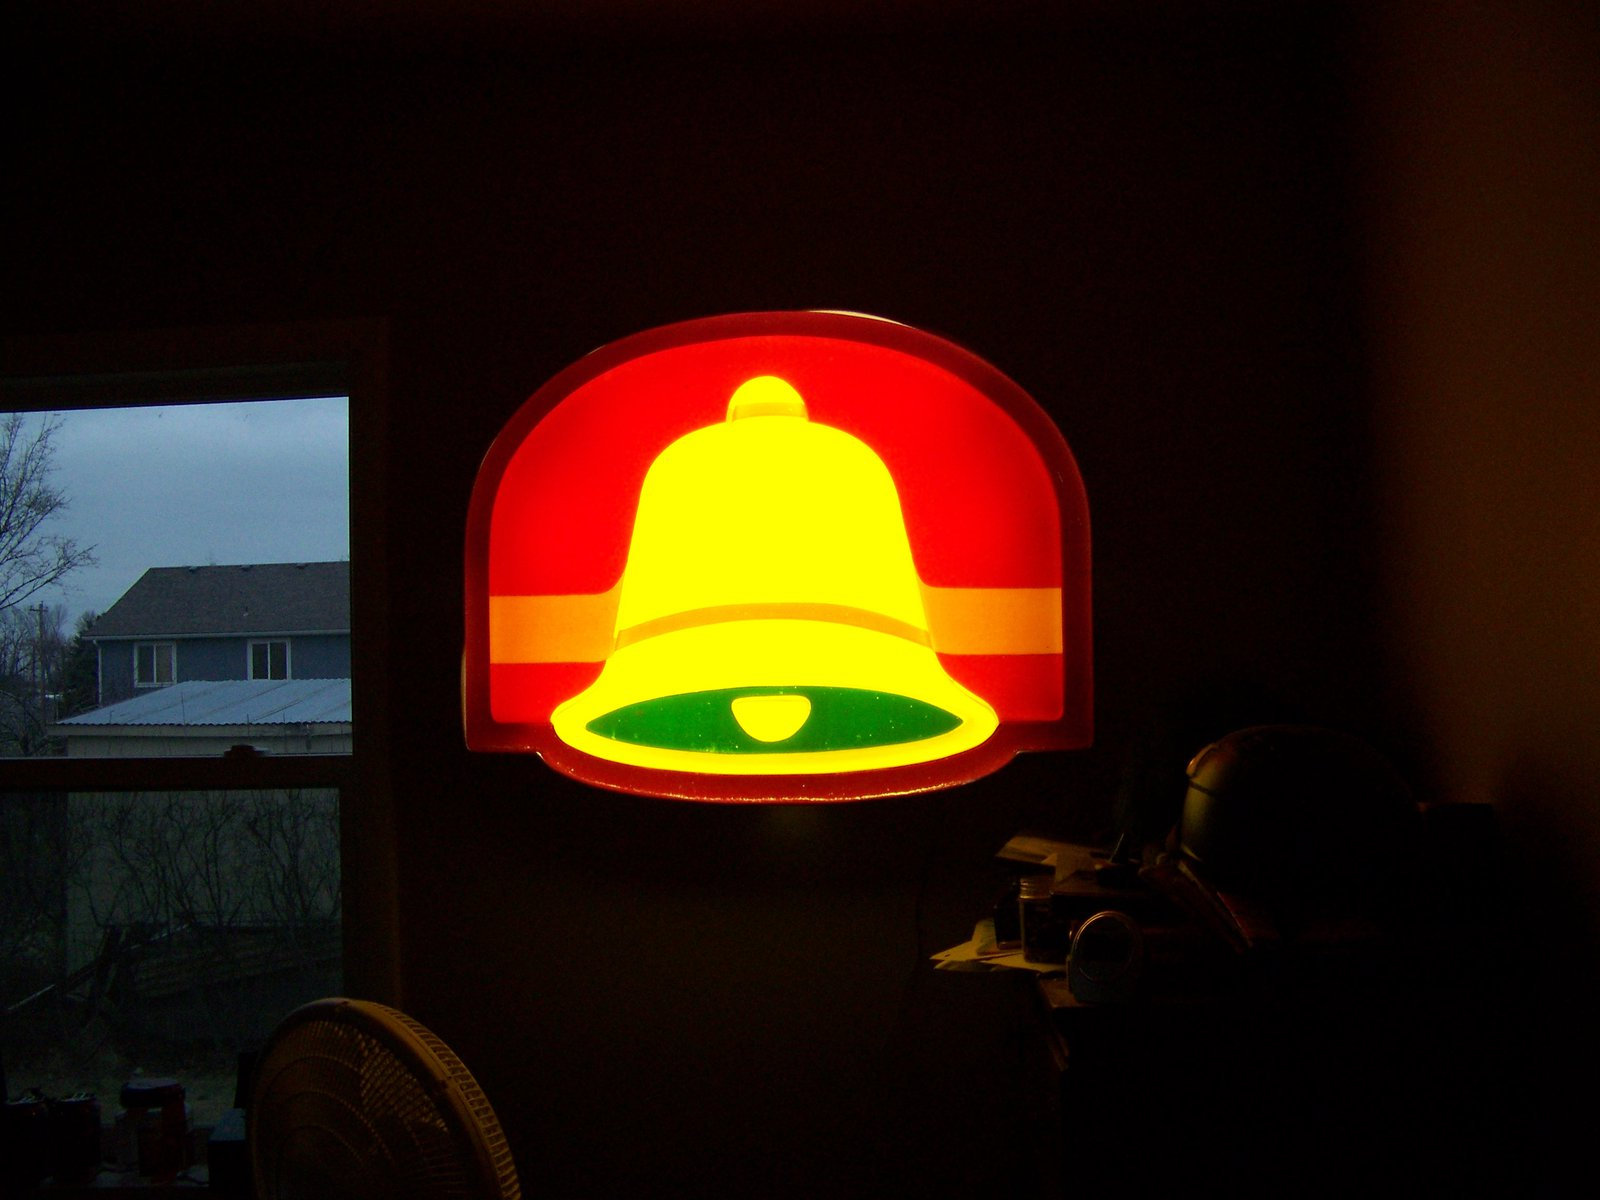 Lit taco bell sign